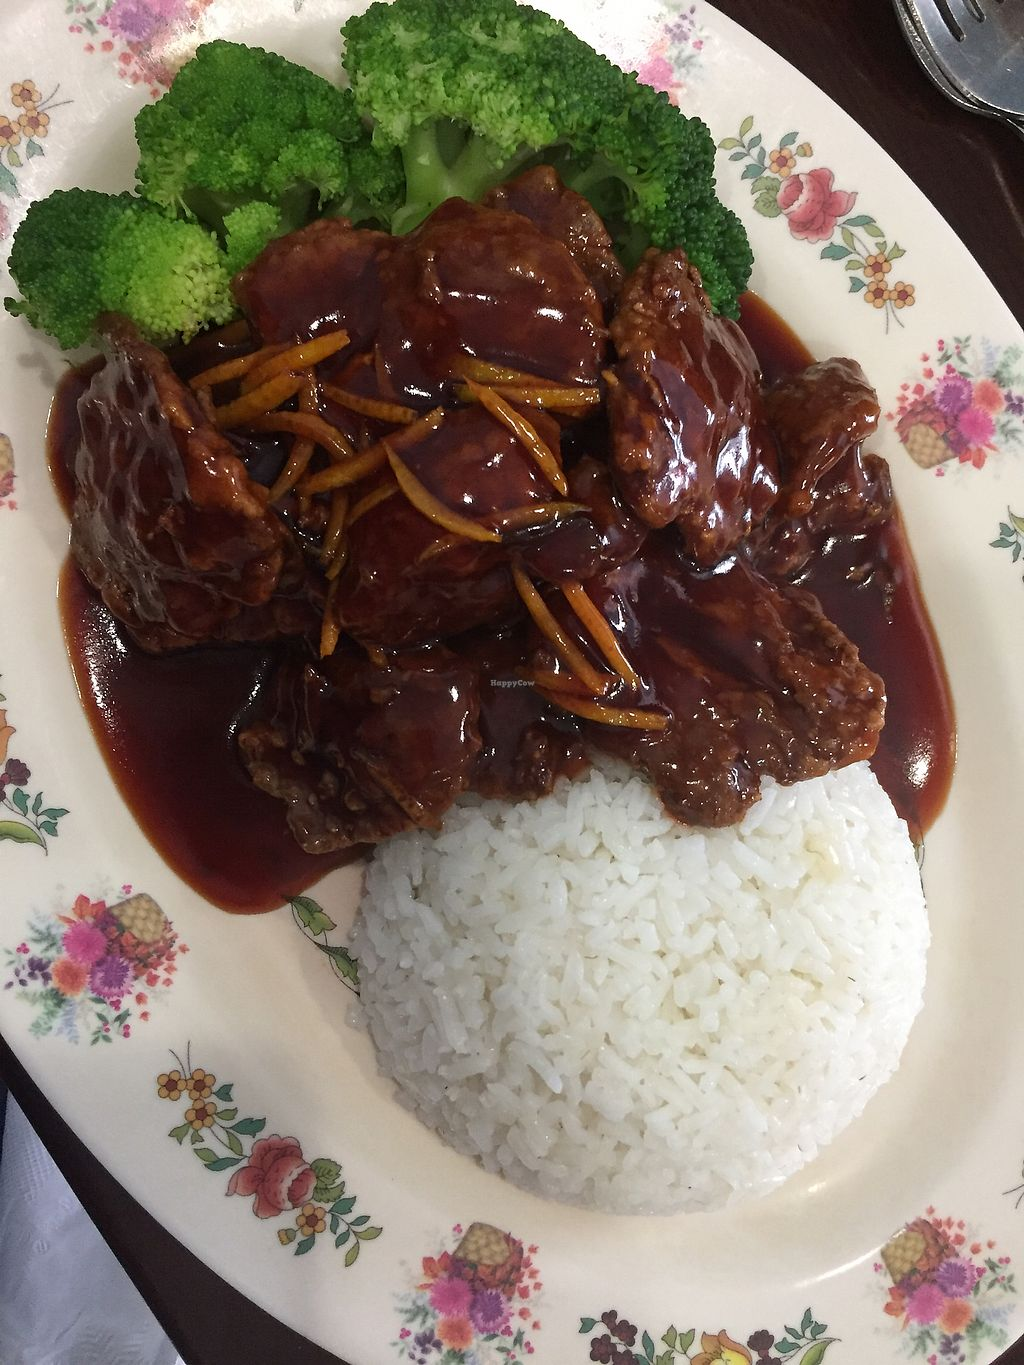 """Photo of Chen Vegetarian House  by <a href=""""/members/profile/katethevegan"""">katethevegan</a> <br/>orange chicken <br/> August 31, 2017  - <a href='/contact/abuse/image/42869/299241'>Report</a>"""